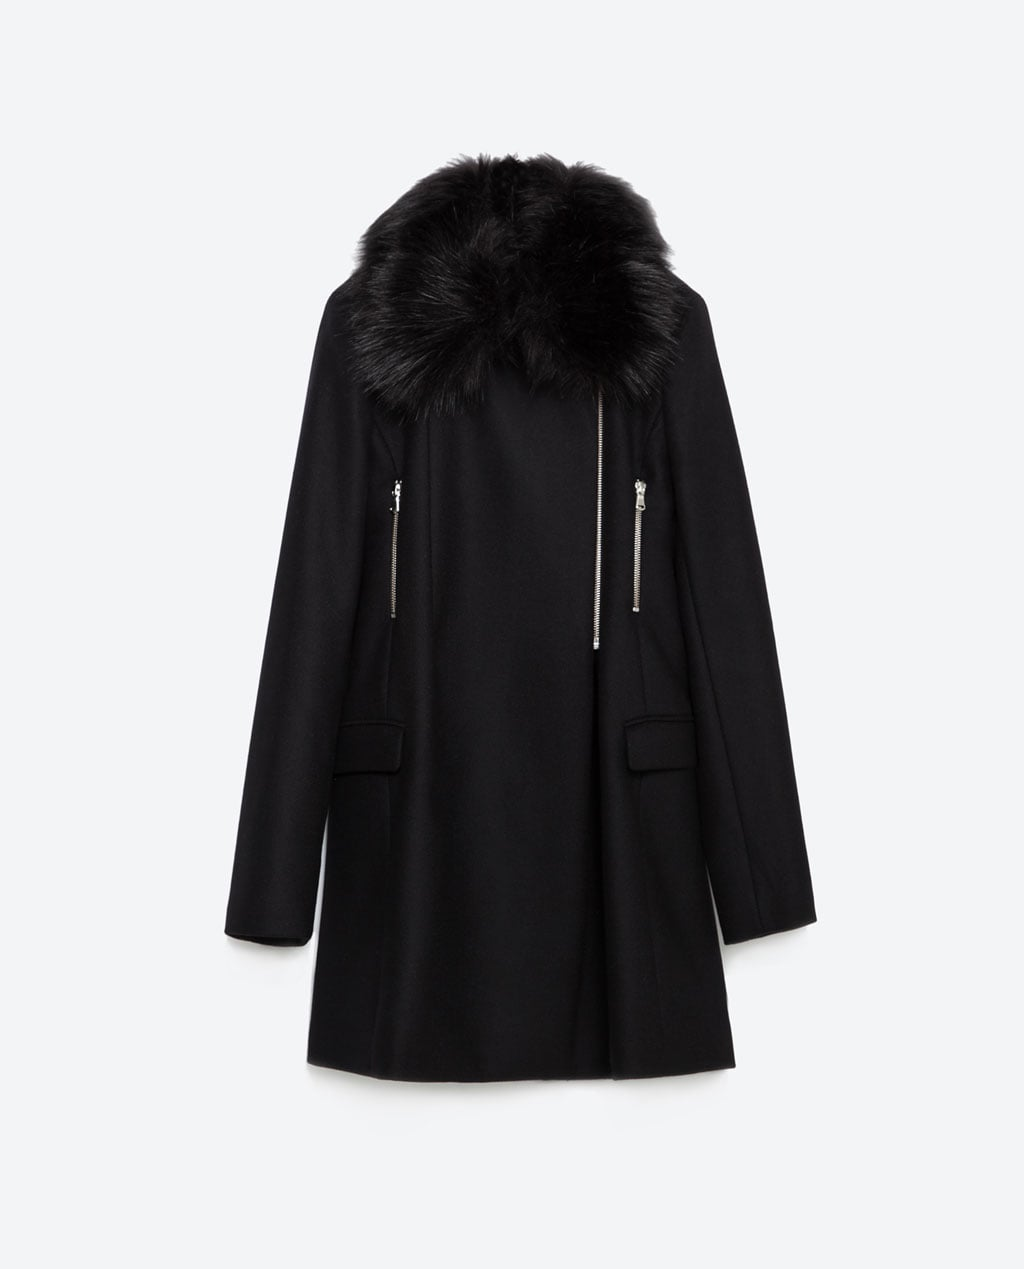 zara coat with faux fur and zippers, $199